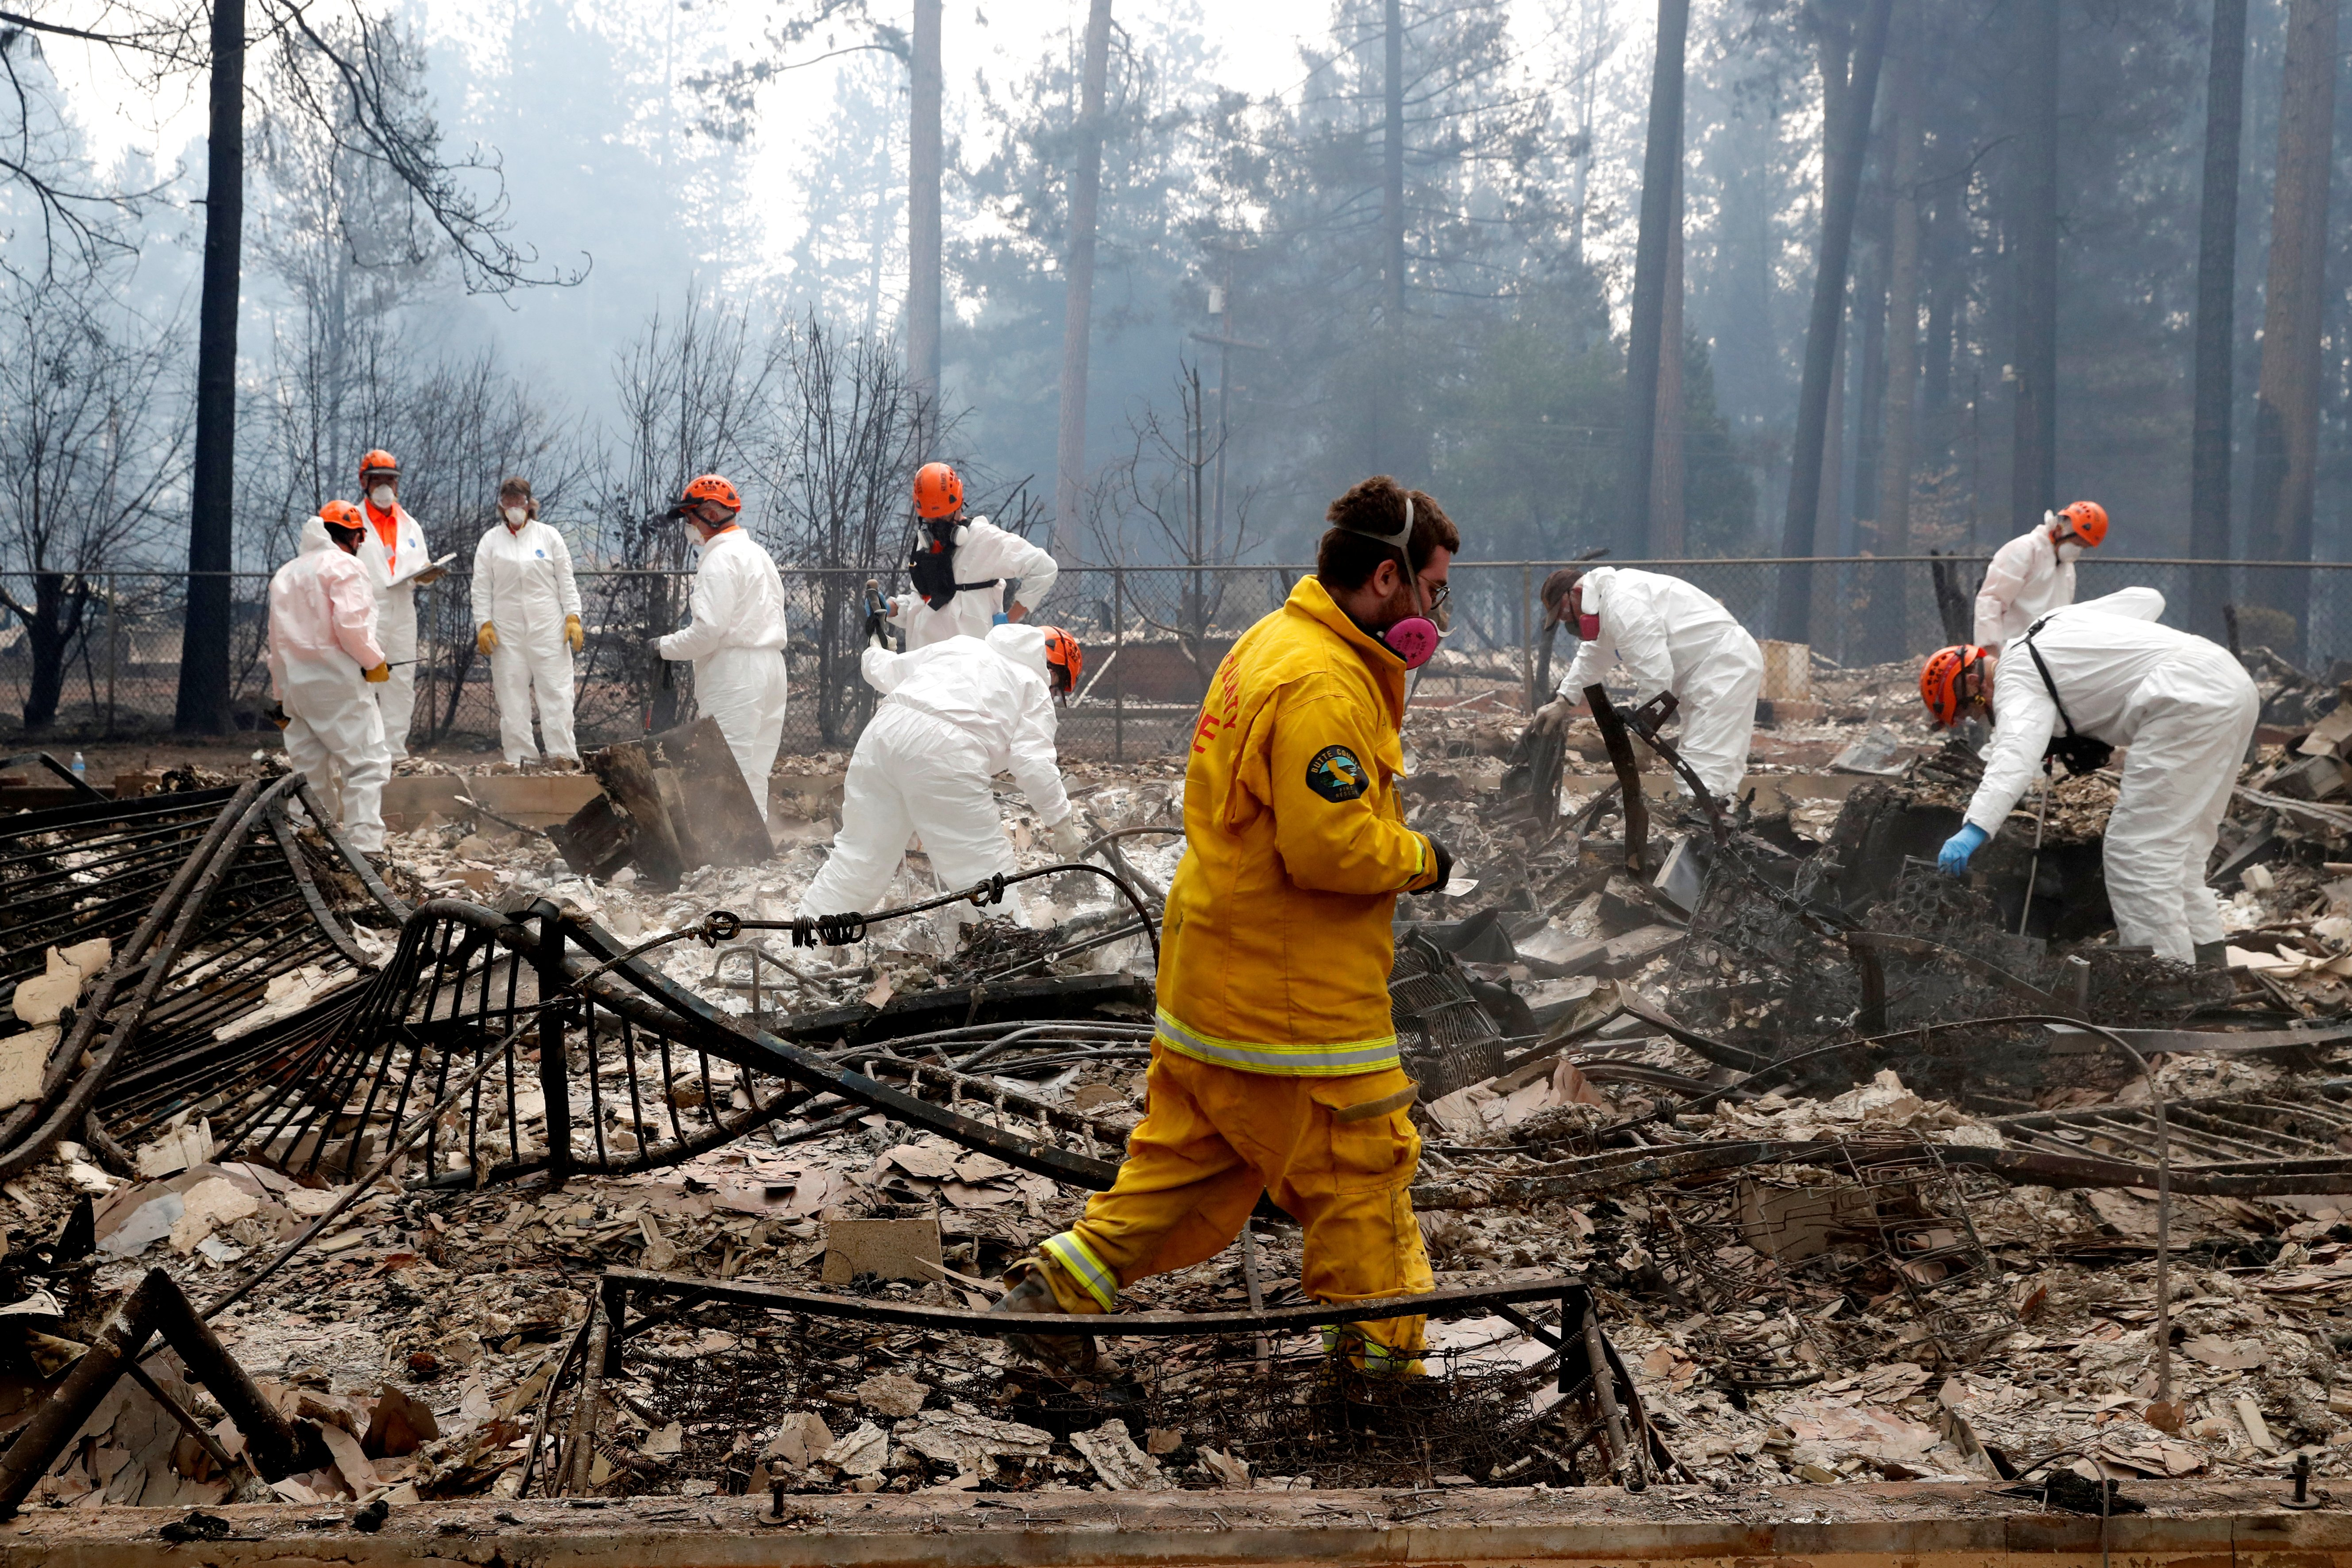 A volunteer search and rescue crew from Calaveras County comb through a home destroyed by the Camp Fire in Paradise